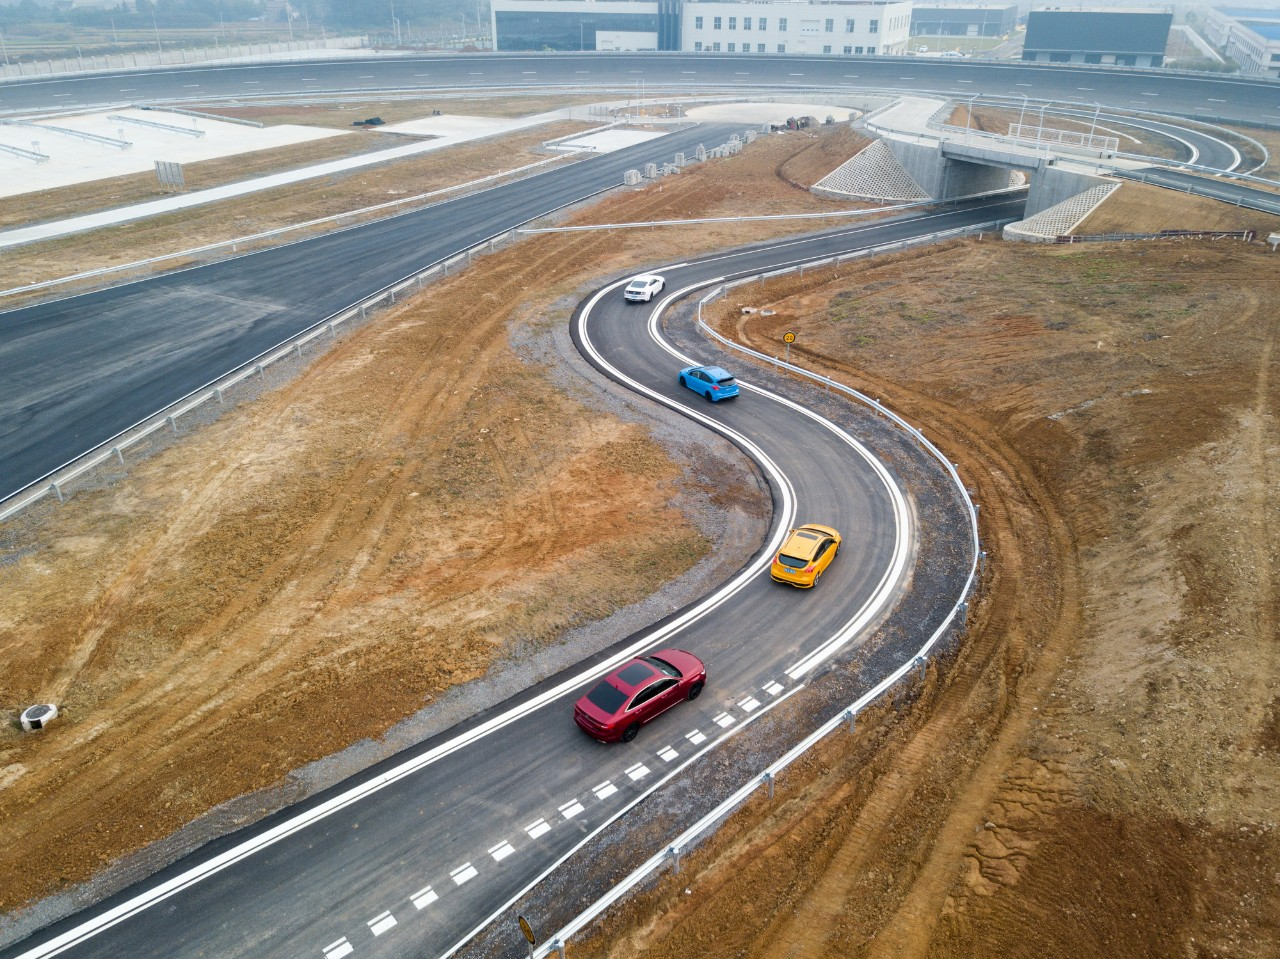 Jc Lewis Ford Savannah >> Ford Opens Nanjing Test Center and MakerSpace as Part of ...